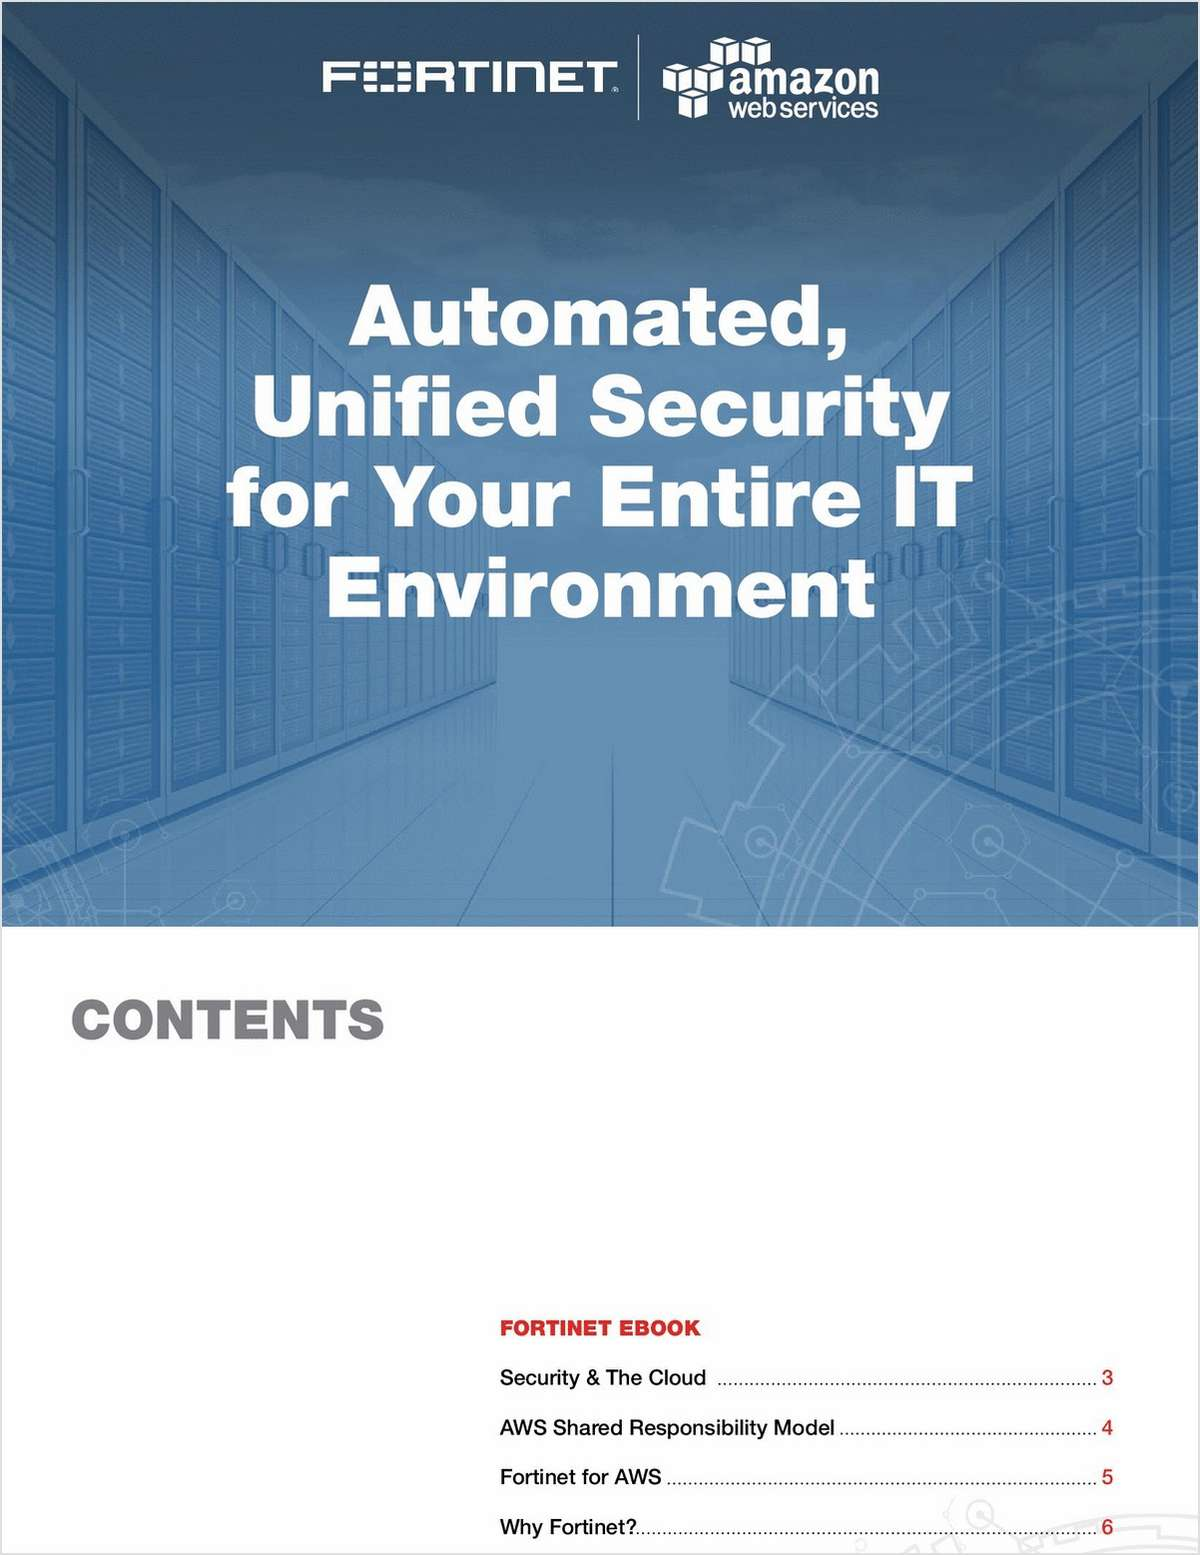 Automated, Unified Security for Your Entire IT Environment